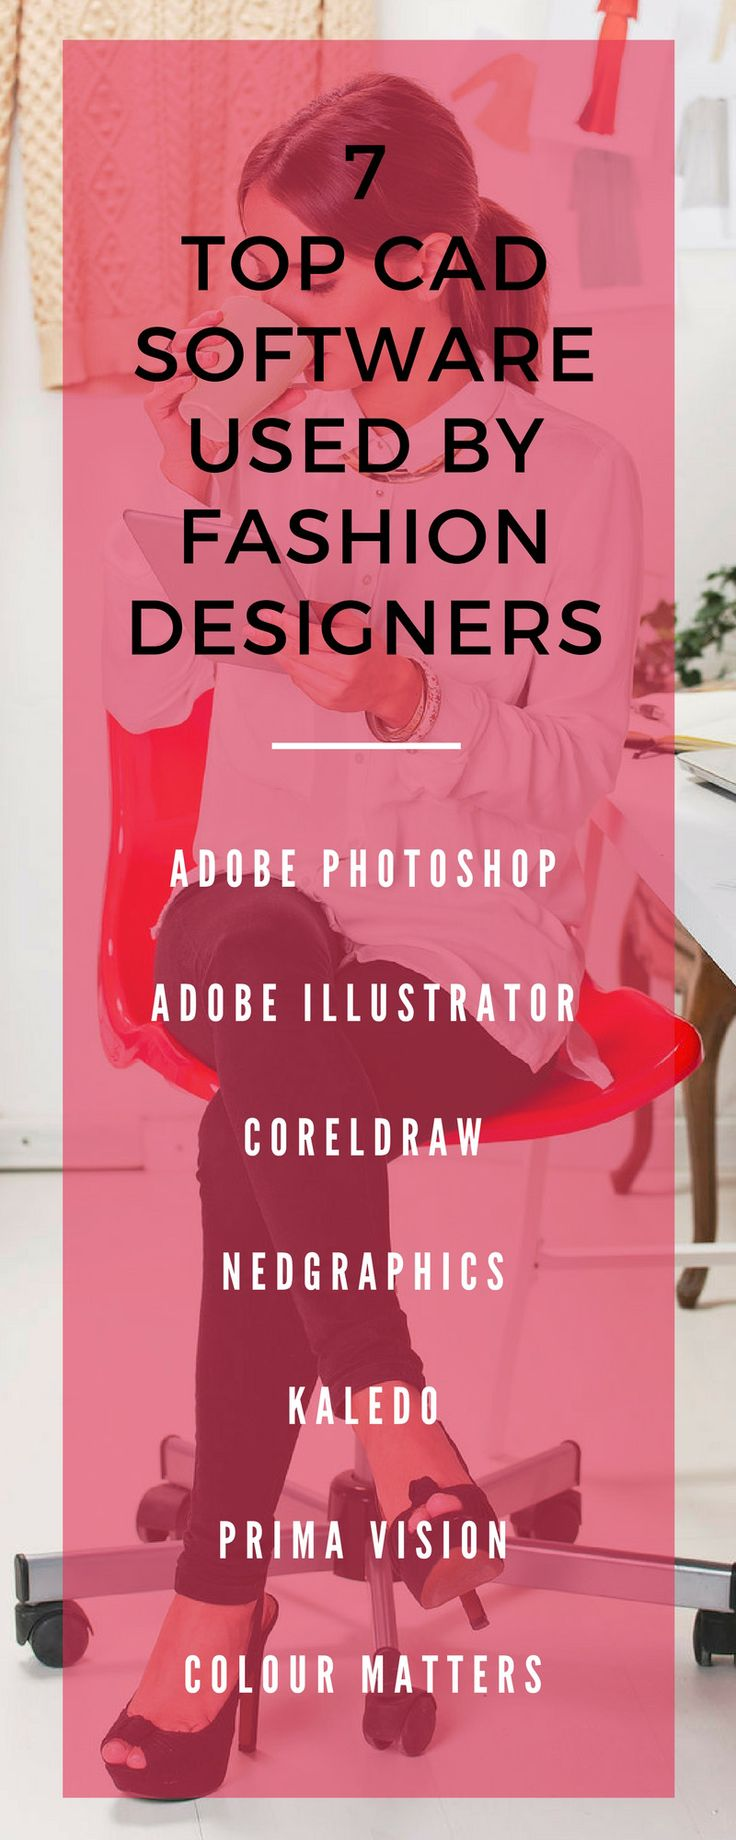 Poster design software windows 7 - Cad Software Fashion Textiles Career Advice Job Search Print Design Wealth Fashion Designers